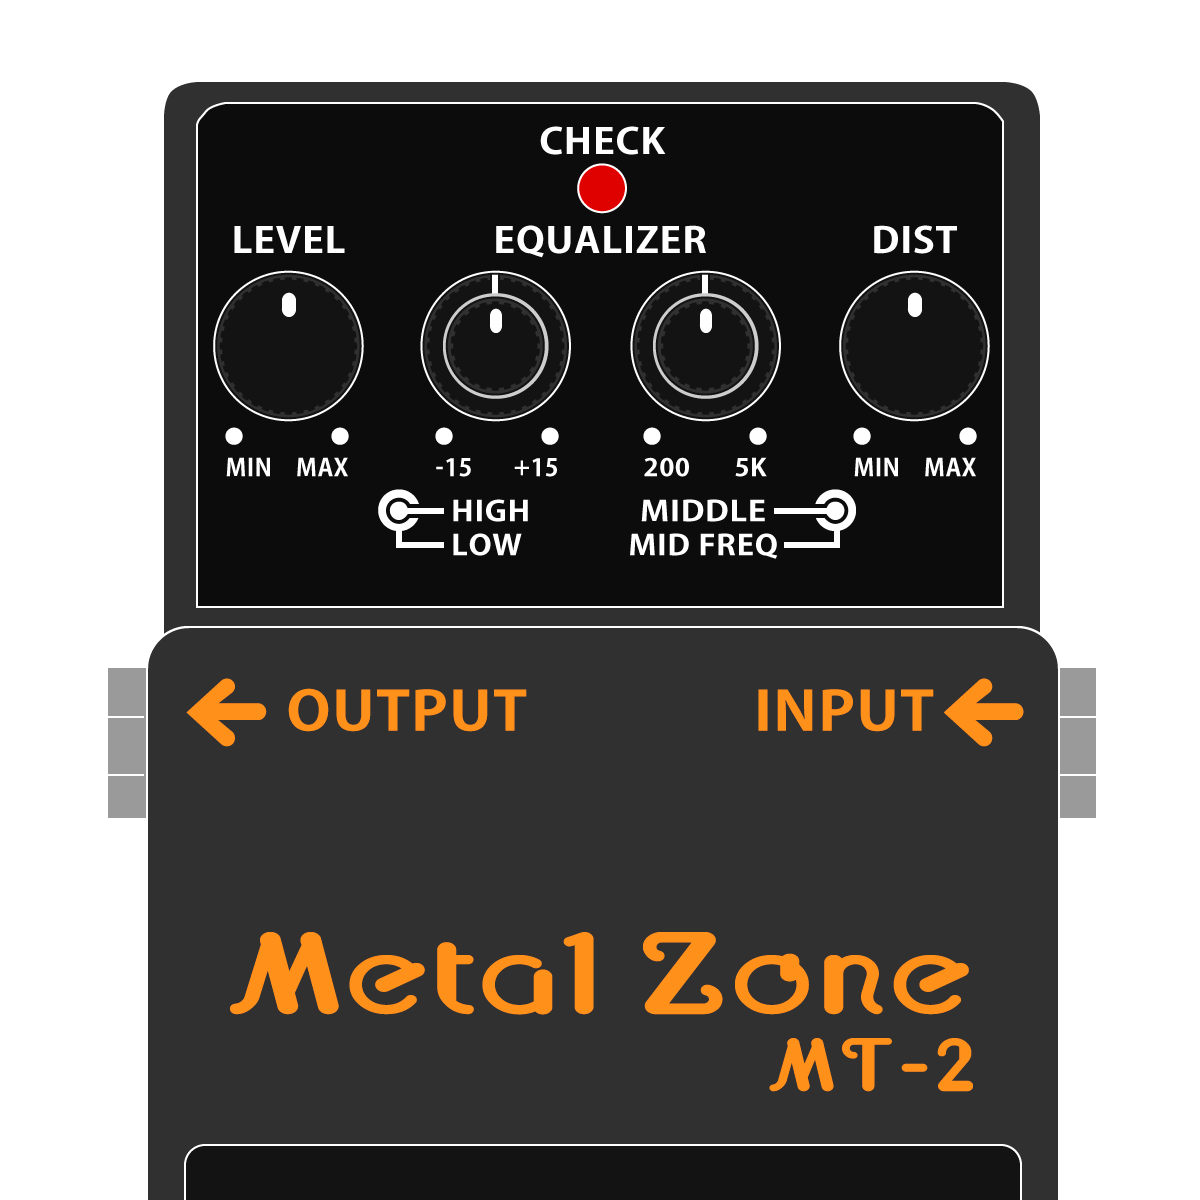 MT-2 Metal Zone(メタルゾーン / ディストーション)